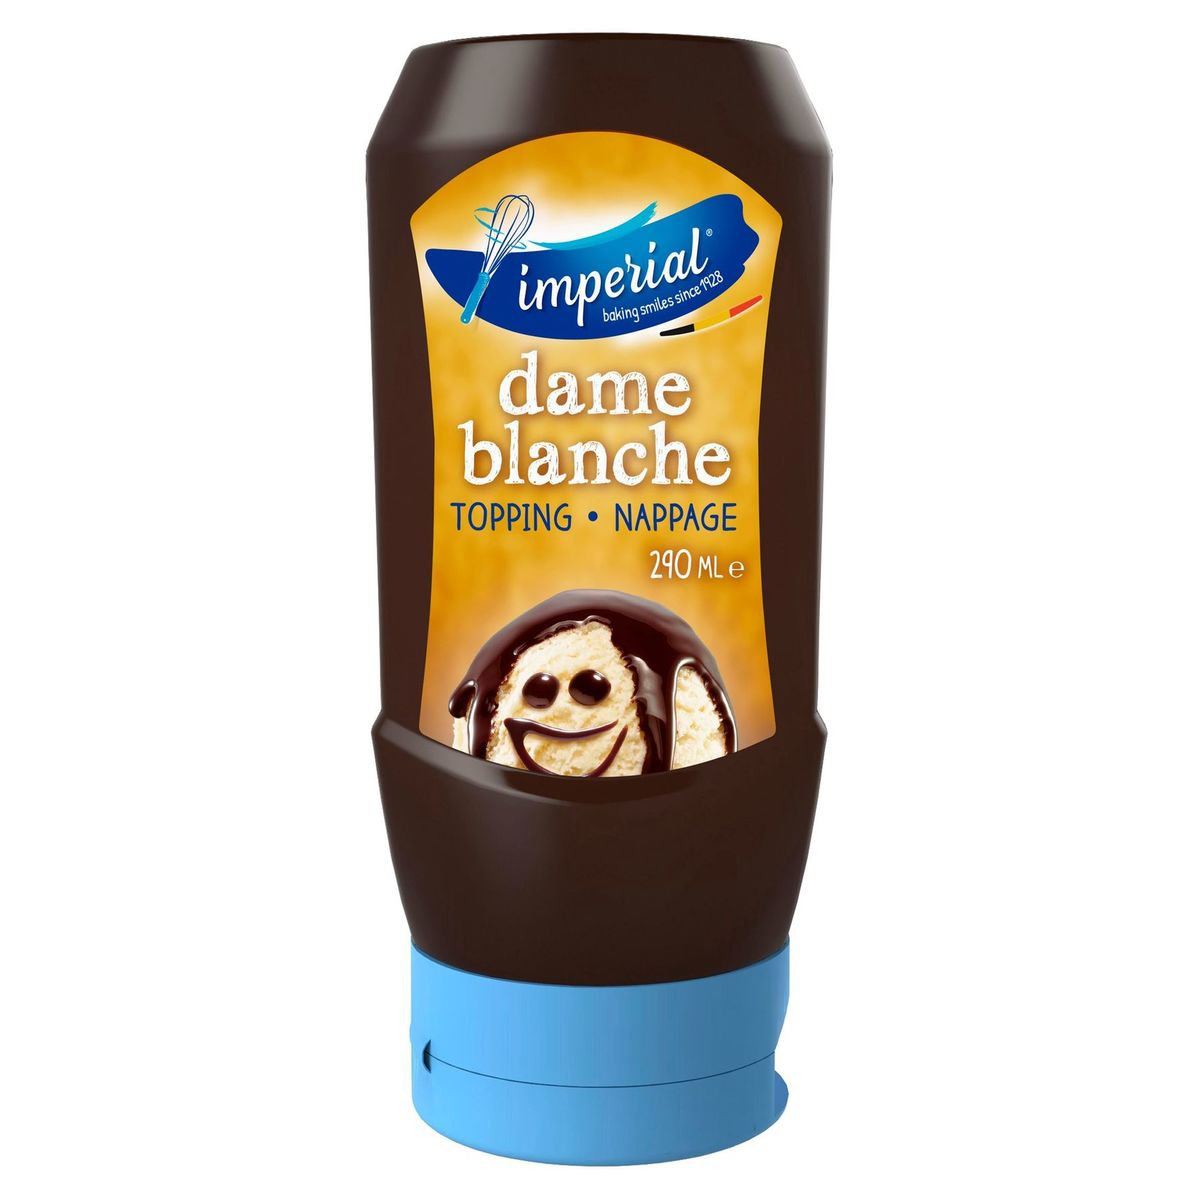 Imperial Topping Dame Blanche 290 ml